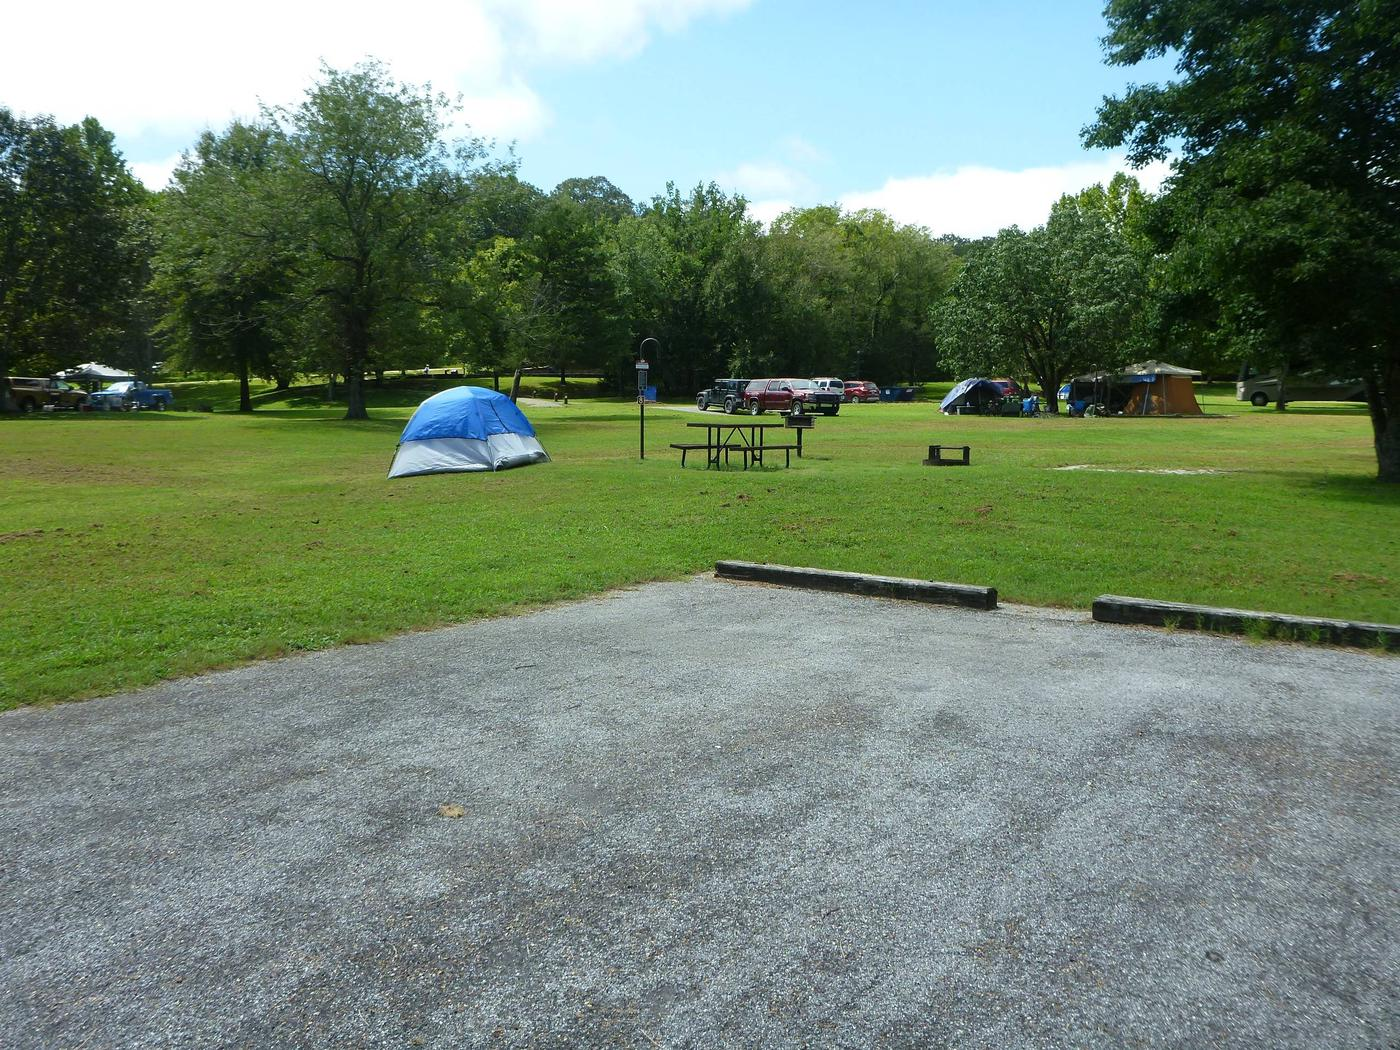 Tyler Bend Main Loop Site# 8-3 Site# 8, 35' back-in, tent pad 15' x 15'.  Parking area is wide enough to parking Rv & car side by side.